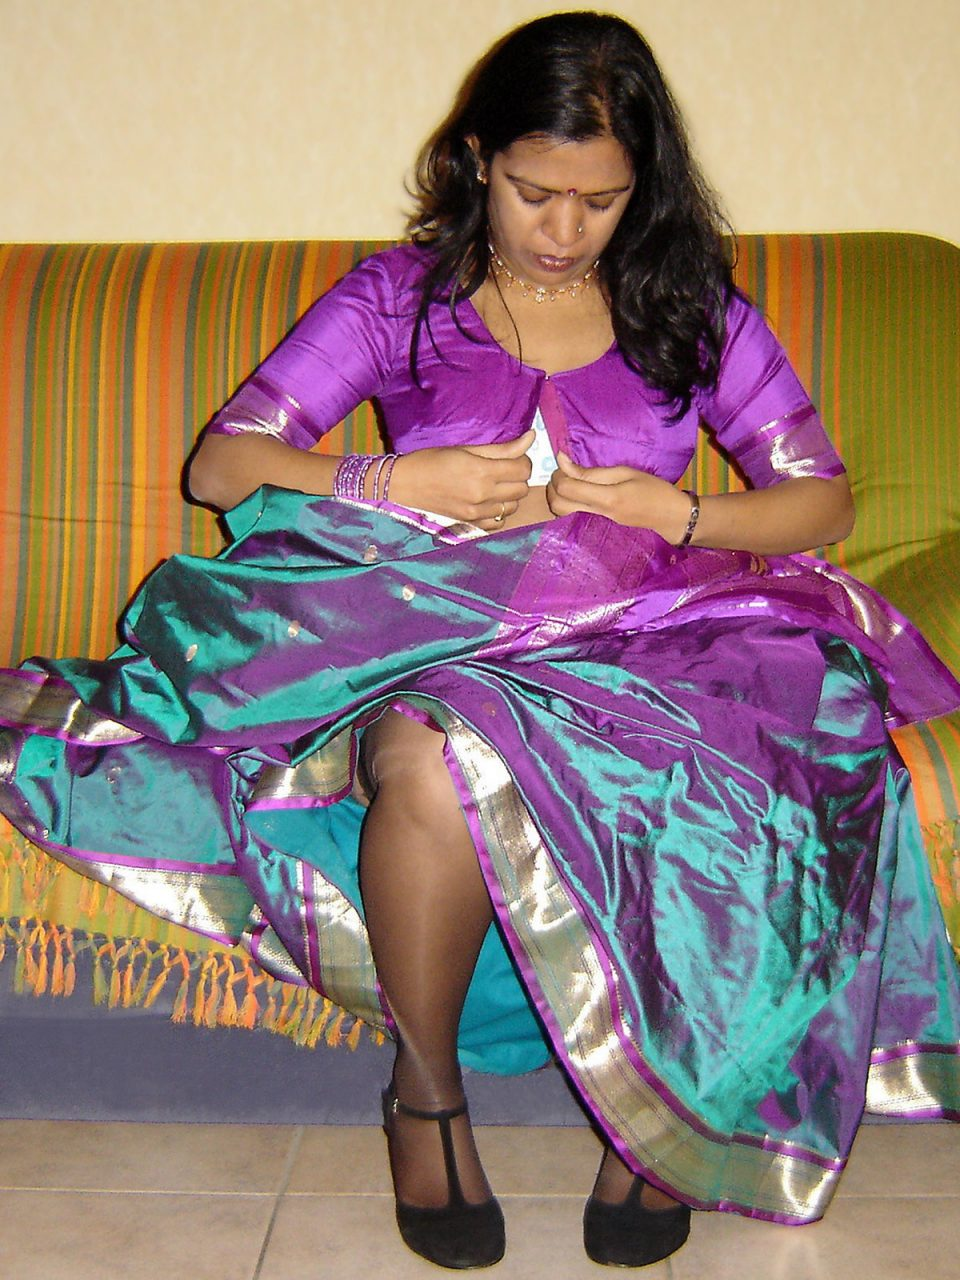 Bangla girl exposing on yahoo - 2 part 6